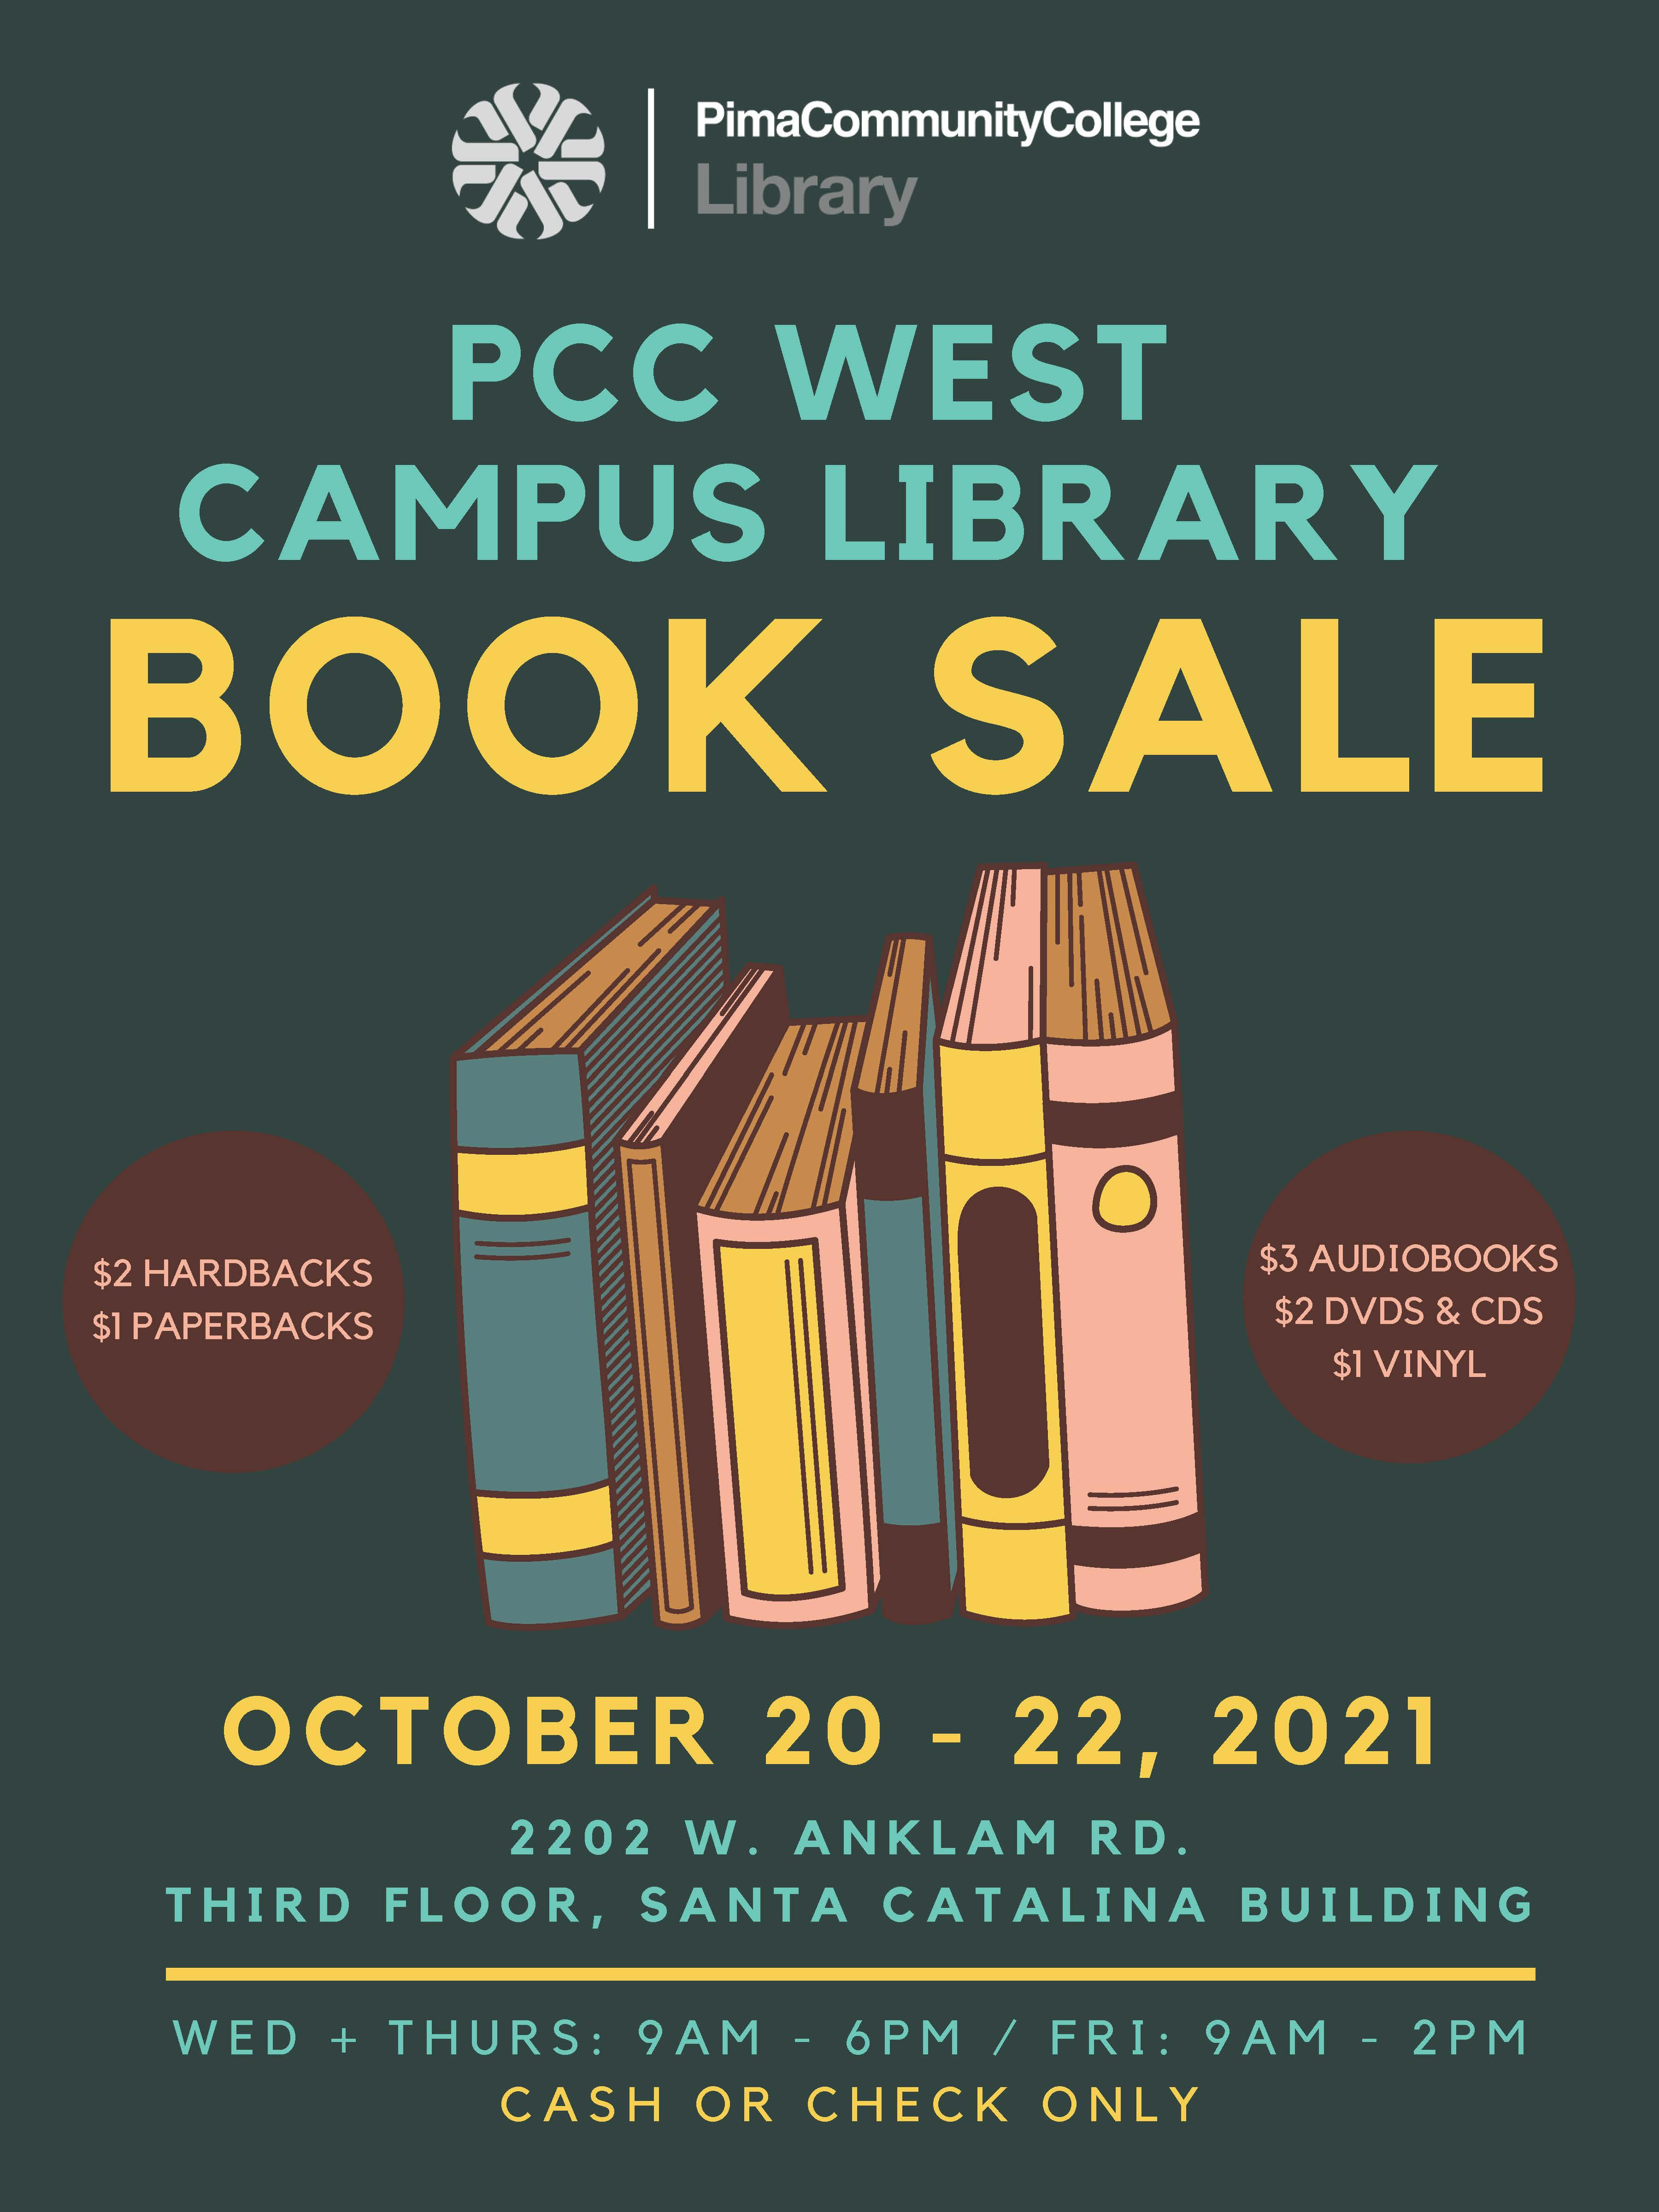 WC book sale  Oct 20-21 9am - 6pm, Oct 22 9am-2pm. In Library 3rd floor C building.